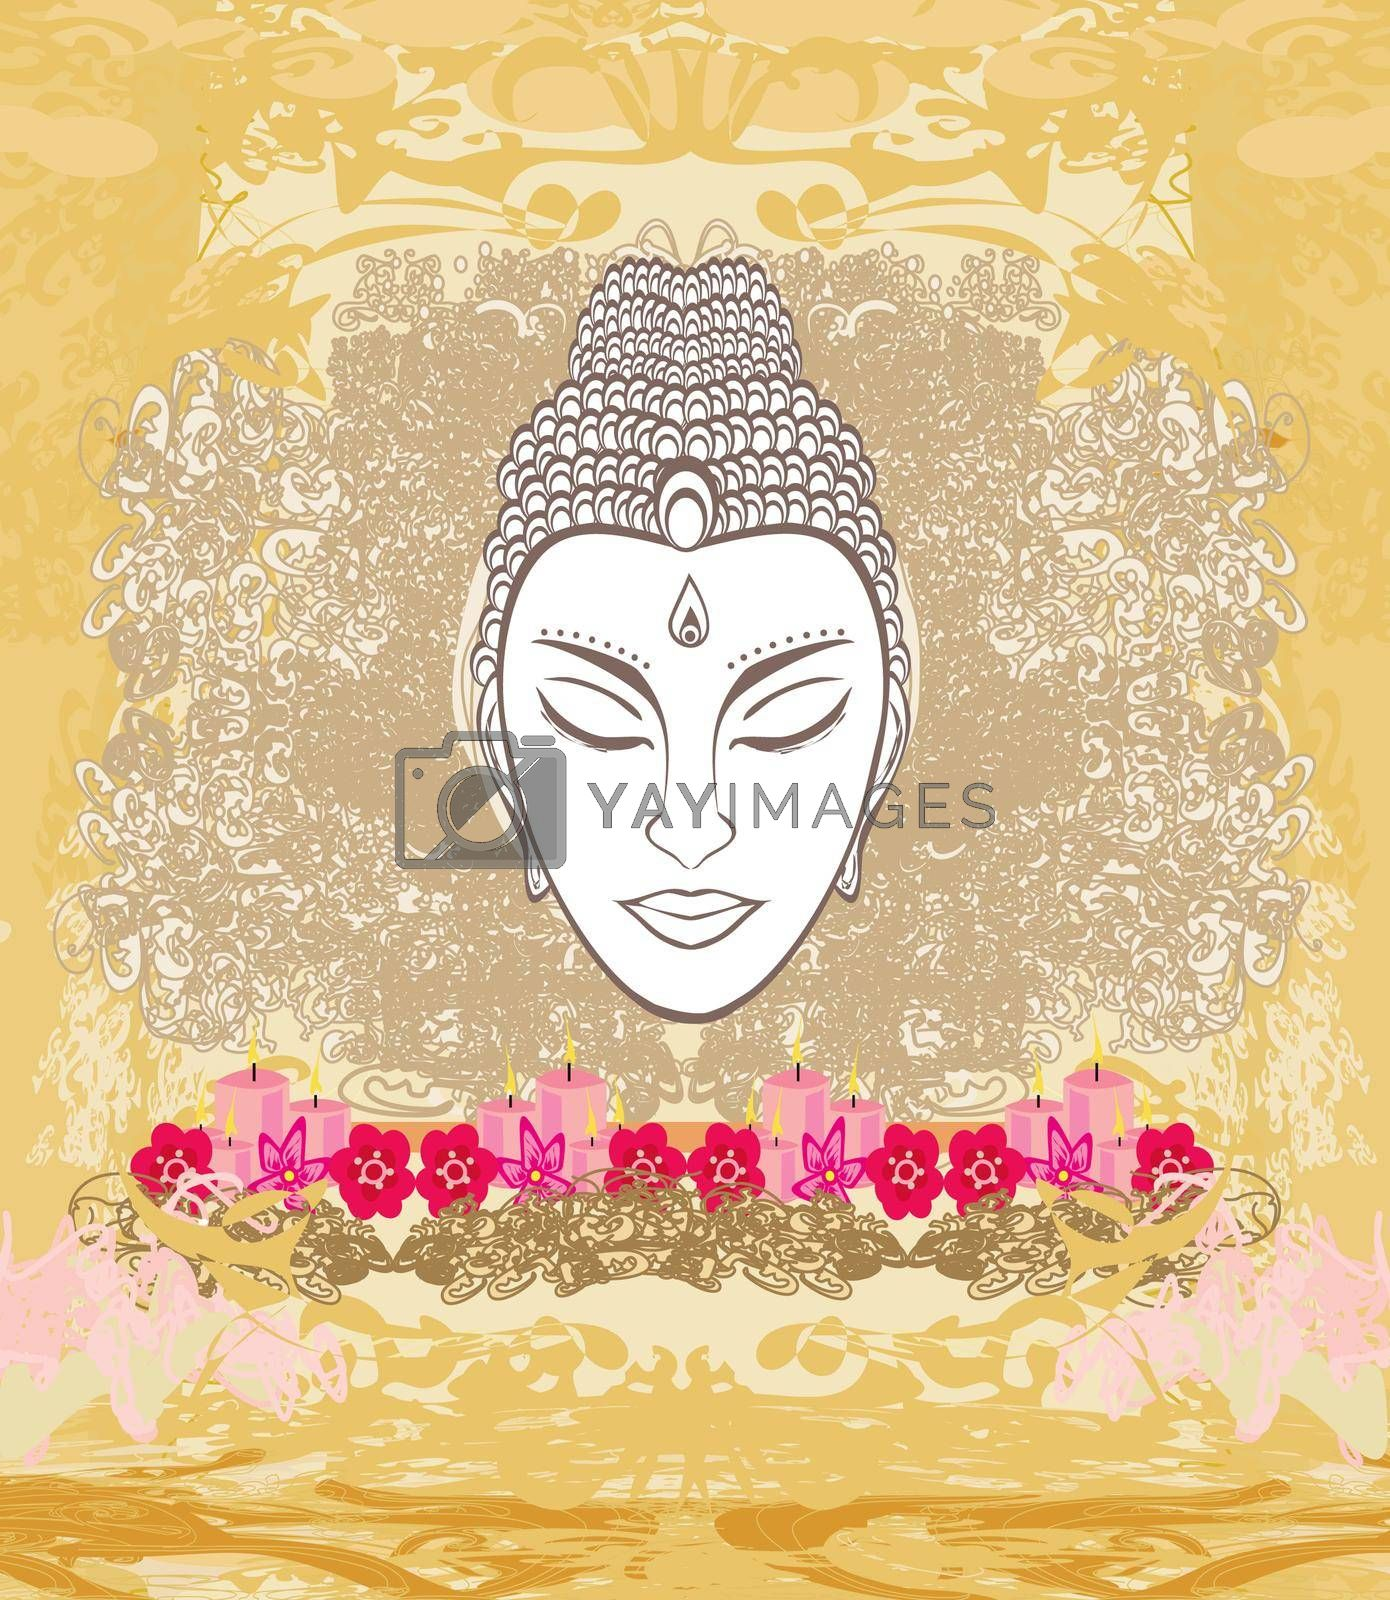 Royalty free image of decorative buddha portrait - abstract illustration by JackyBrown